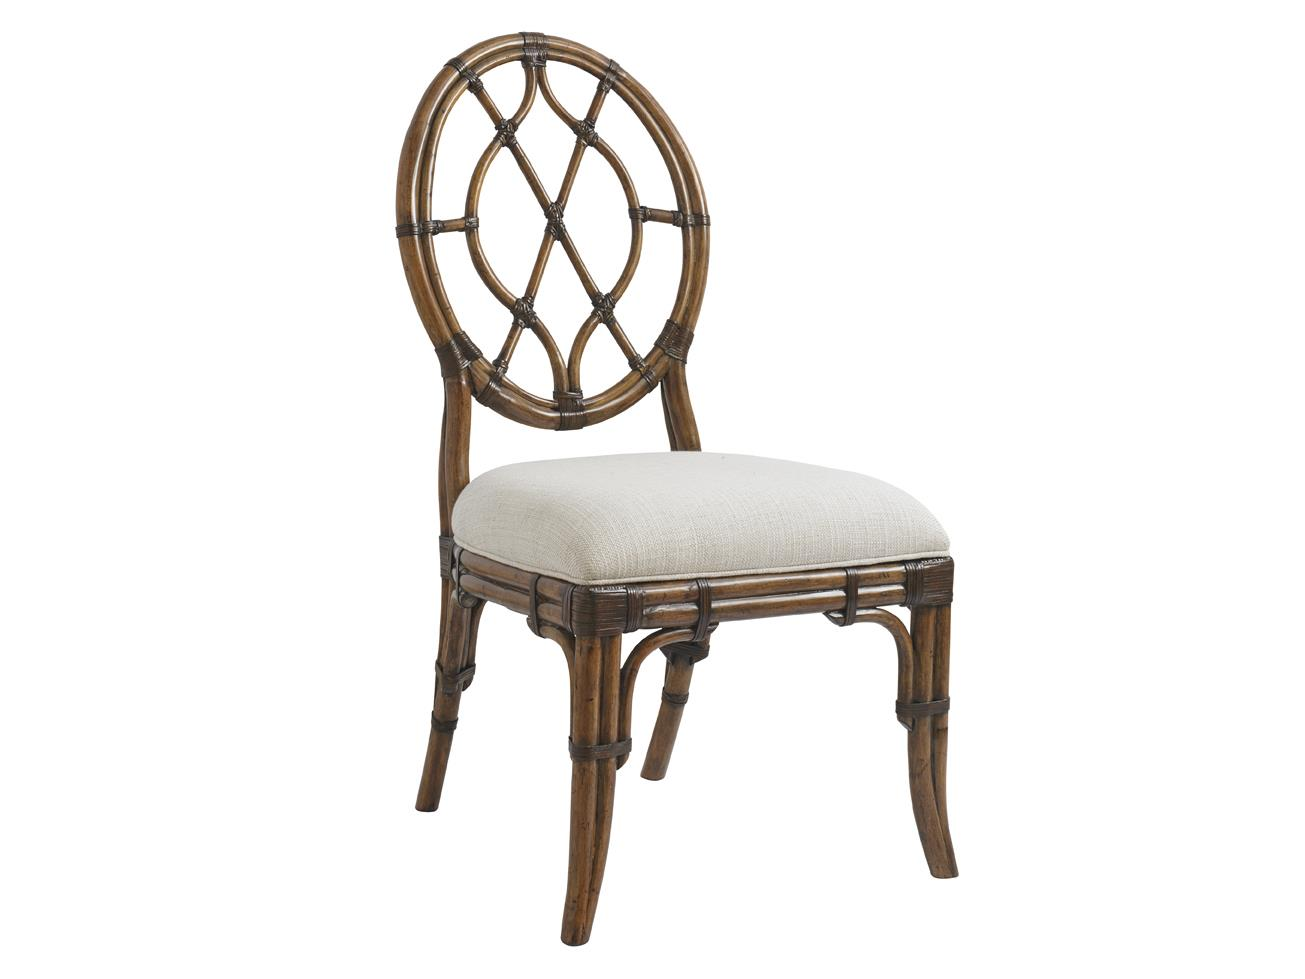 Bali Hai Quickship Cedar Key Oval Back Side Chair by Tommy Bahama Home at Baer's Furniture